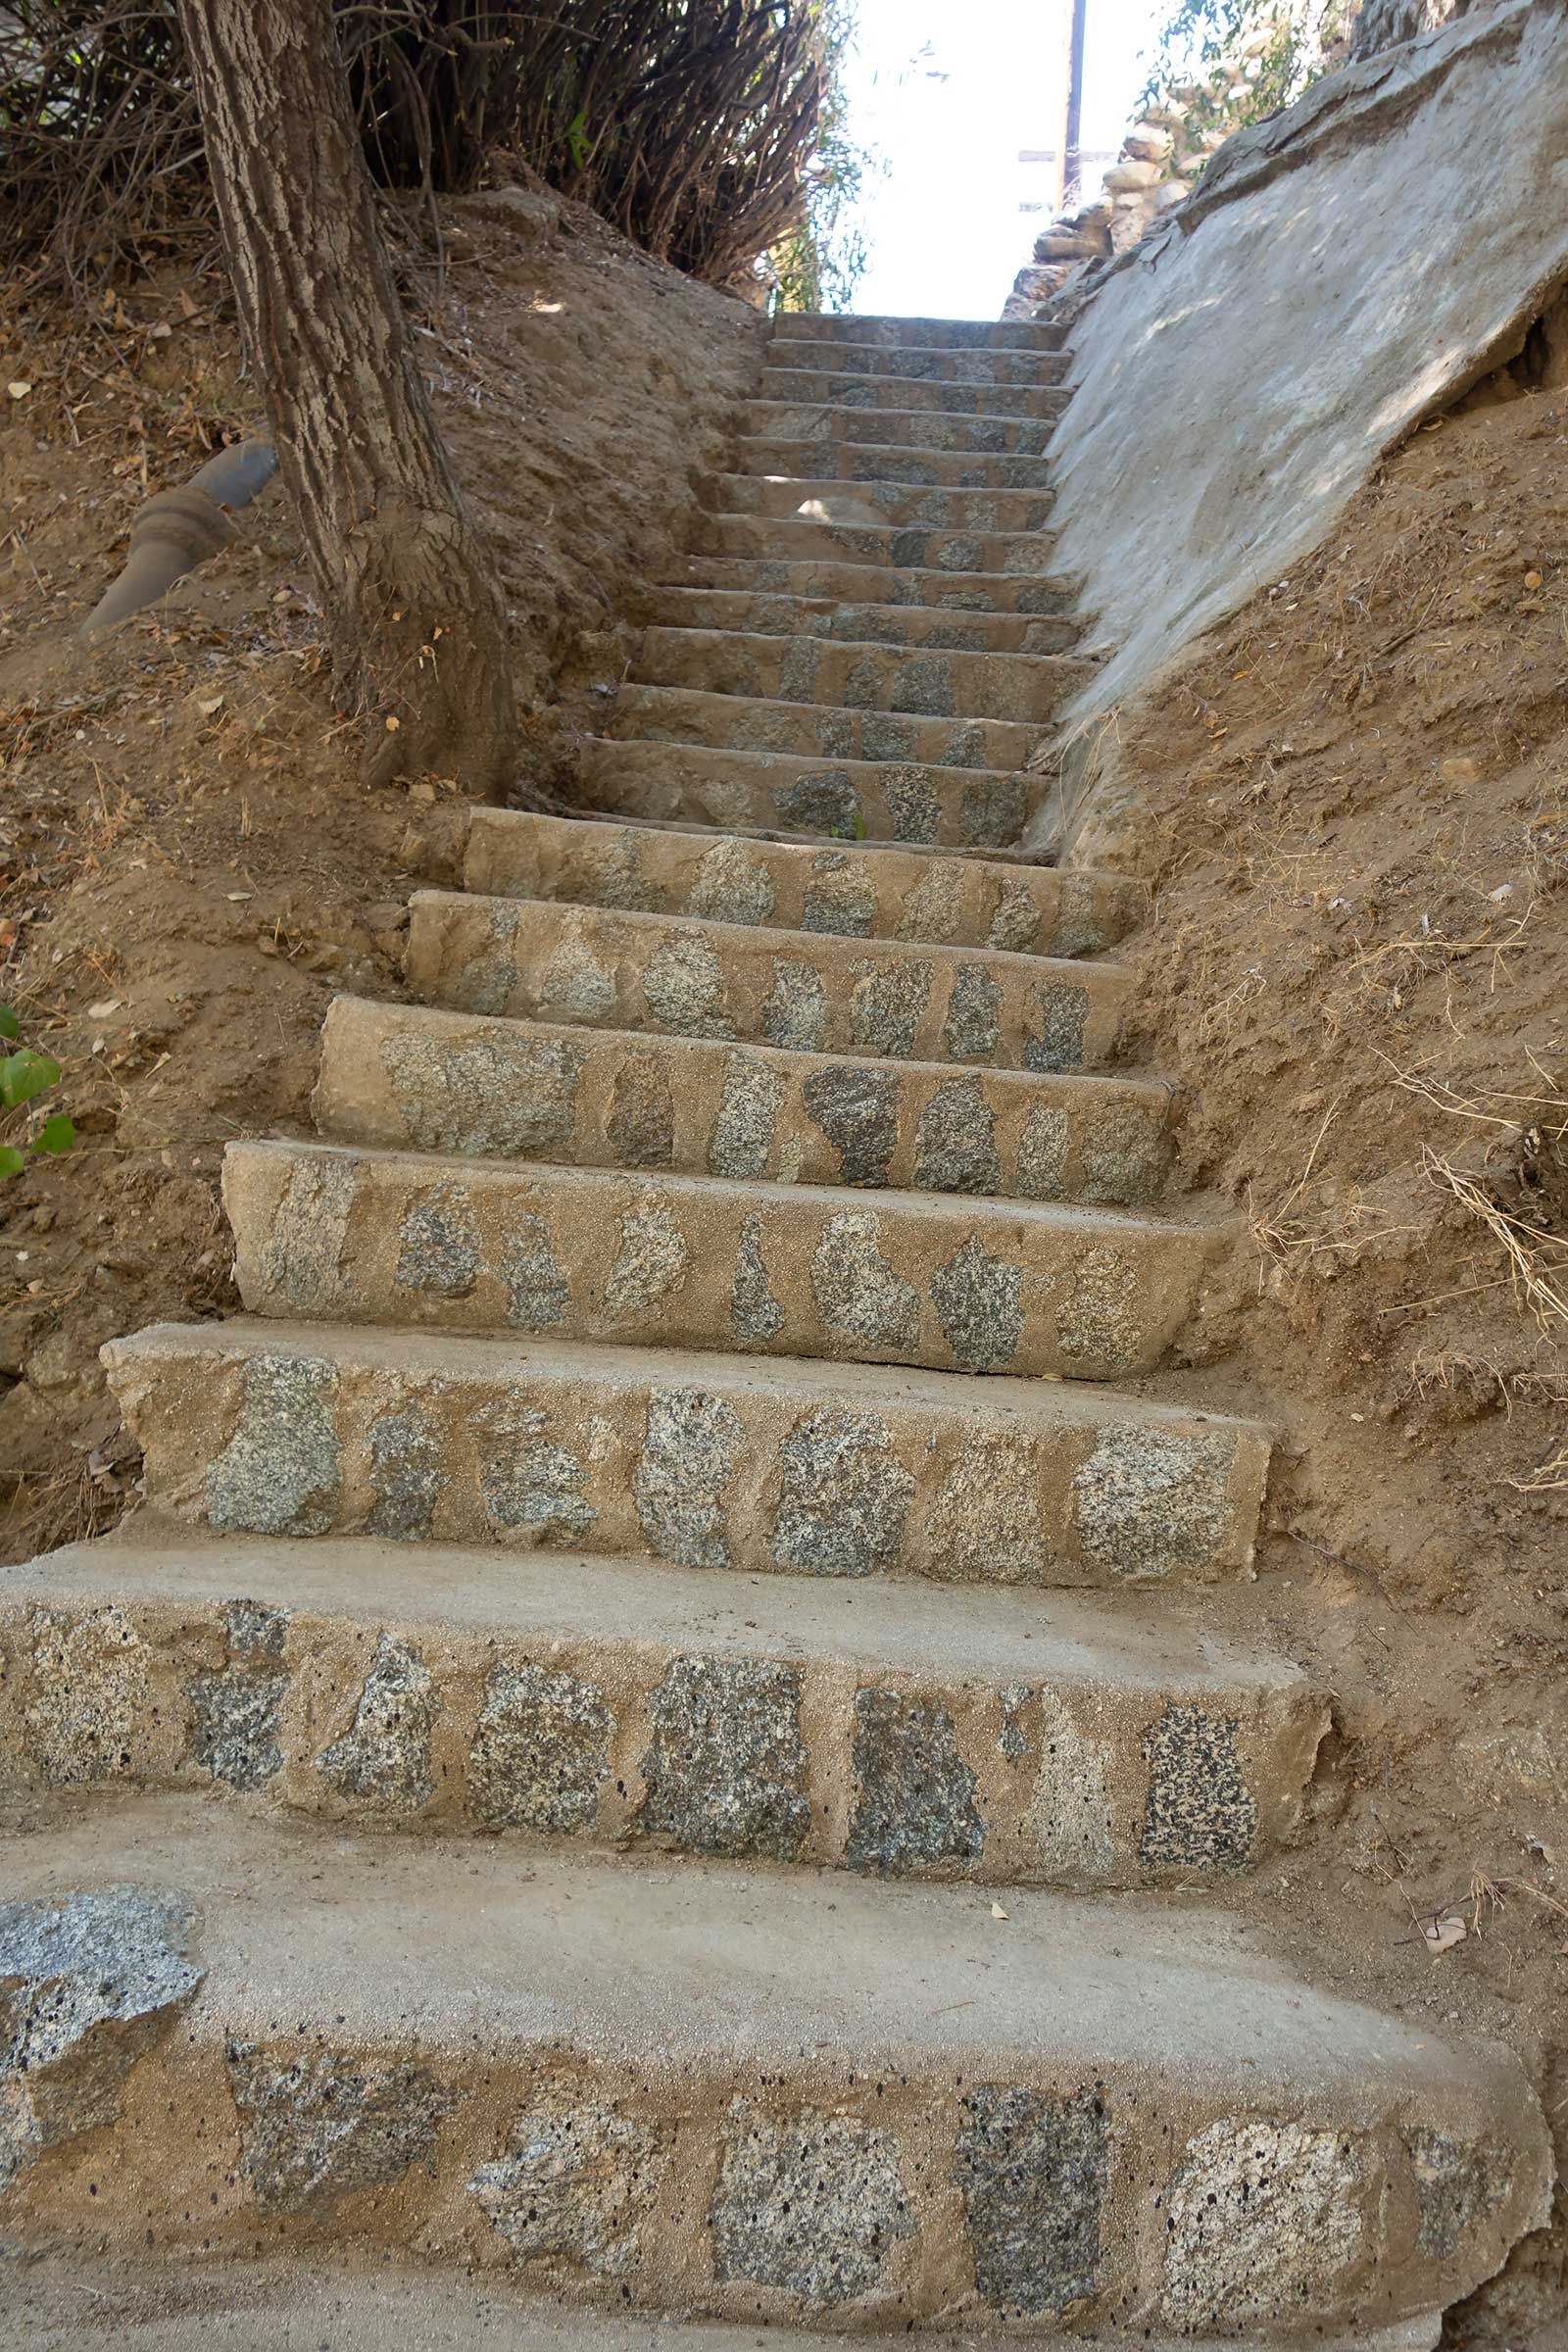 90 year old neighborhood stairway cleaned like new.